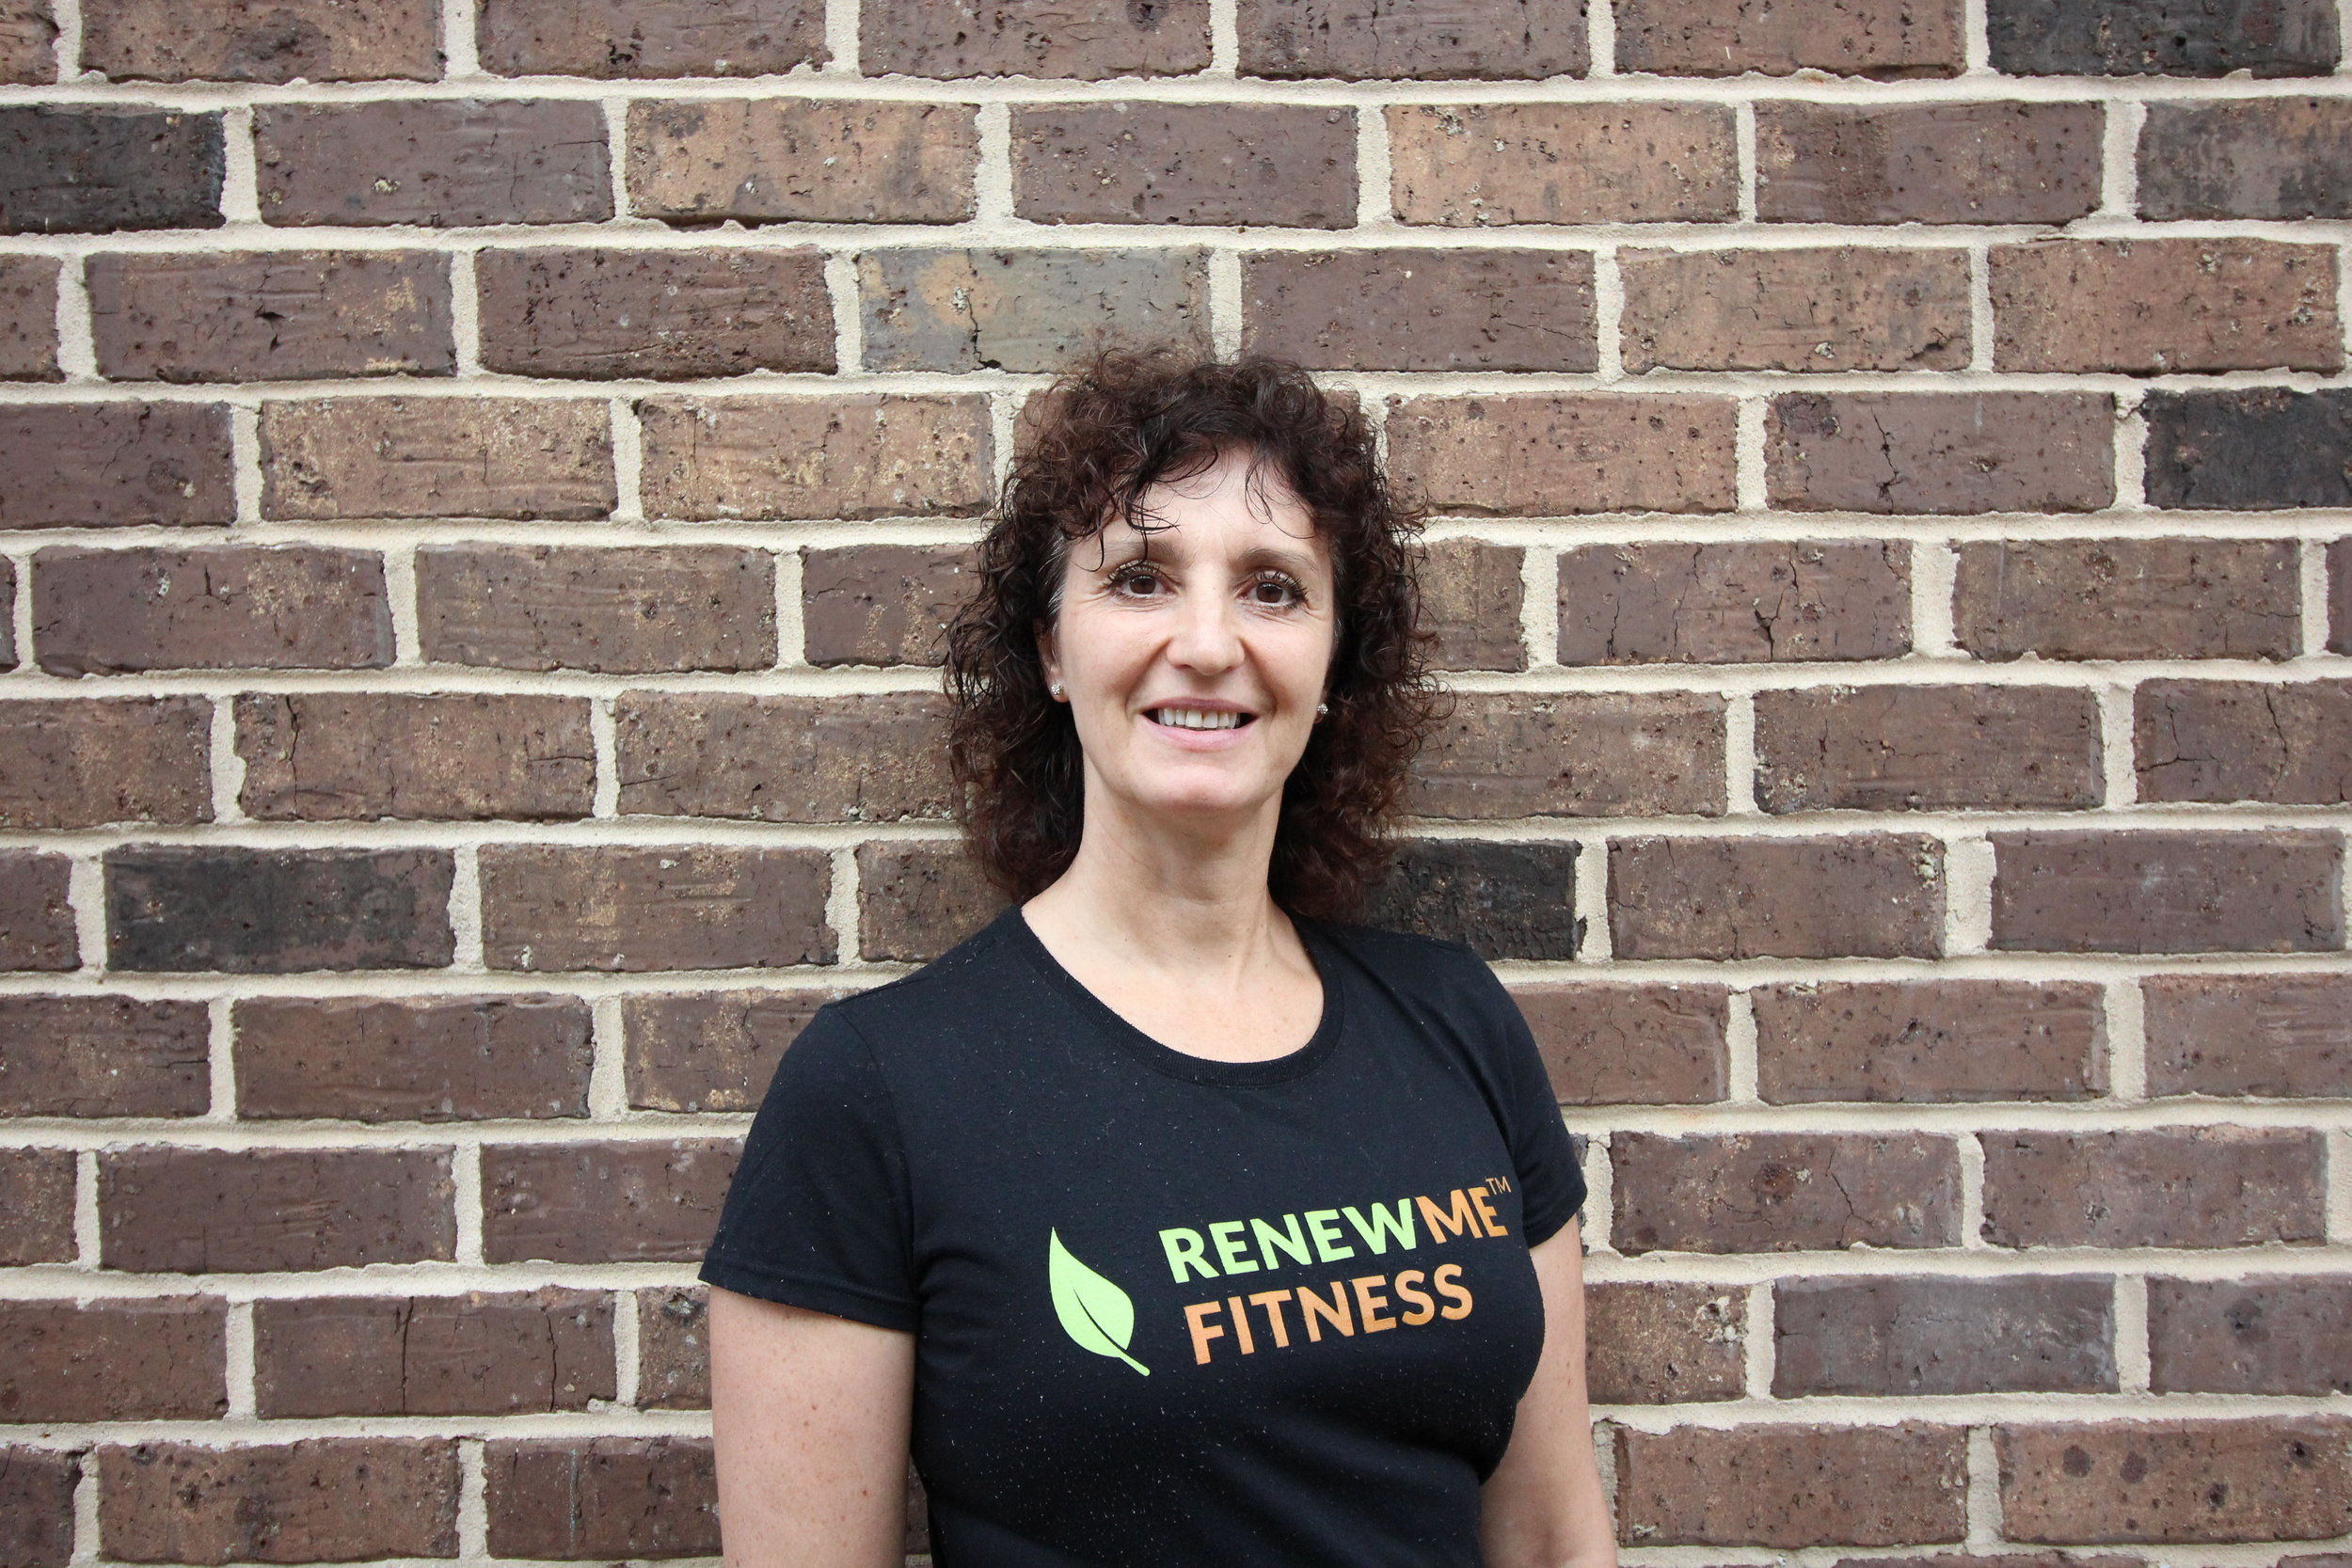 Andrea, RenewMe Fitness personal trainer